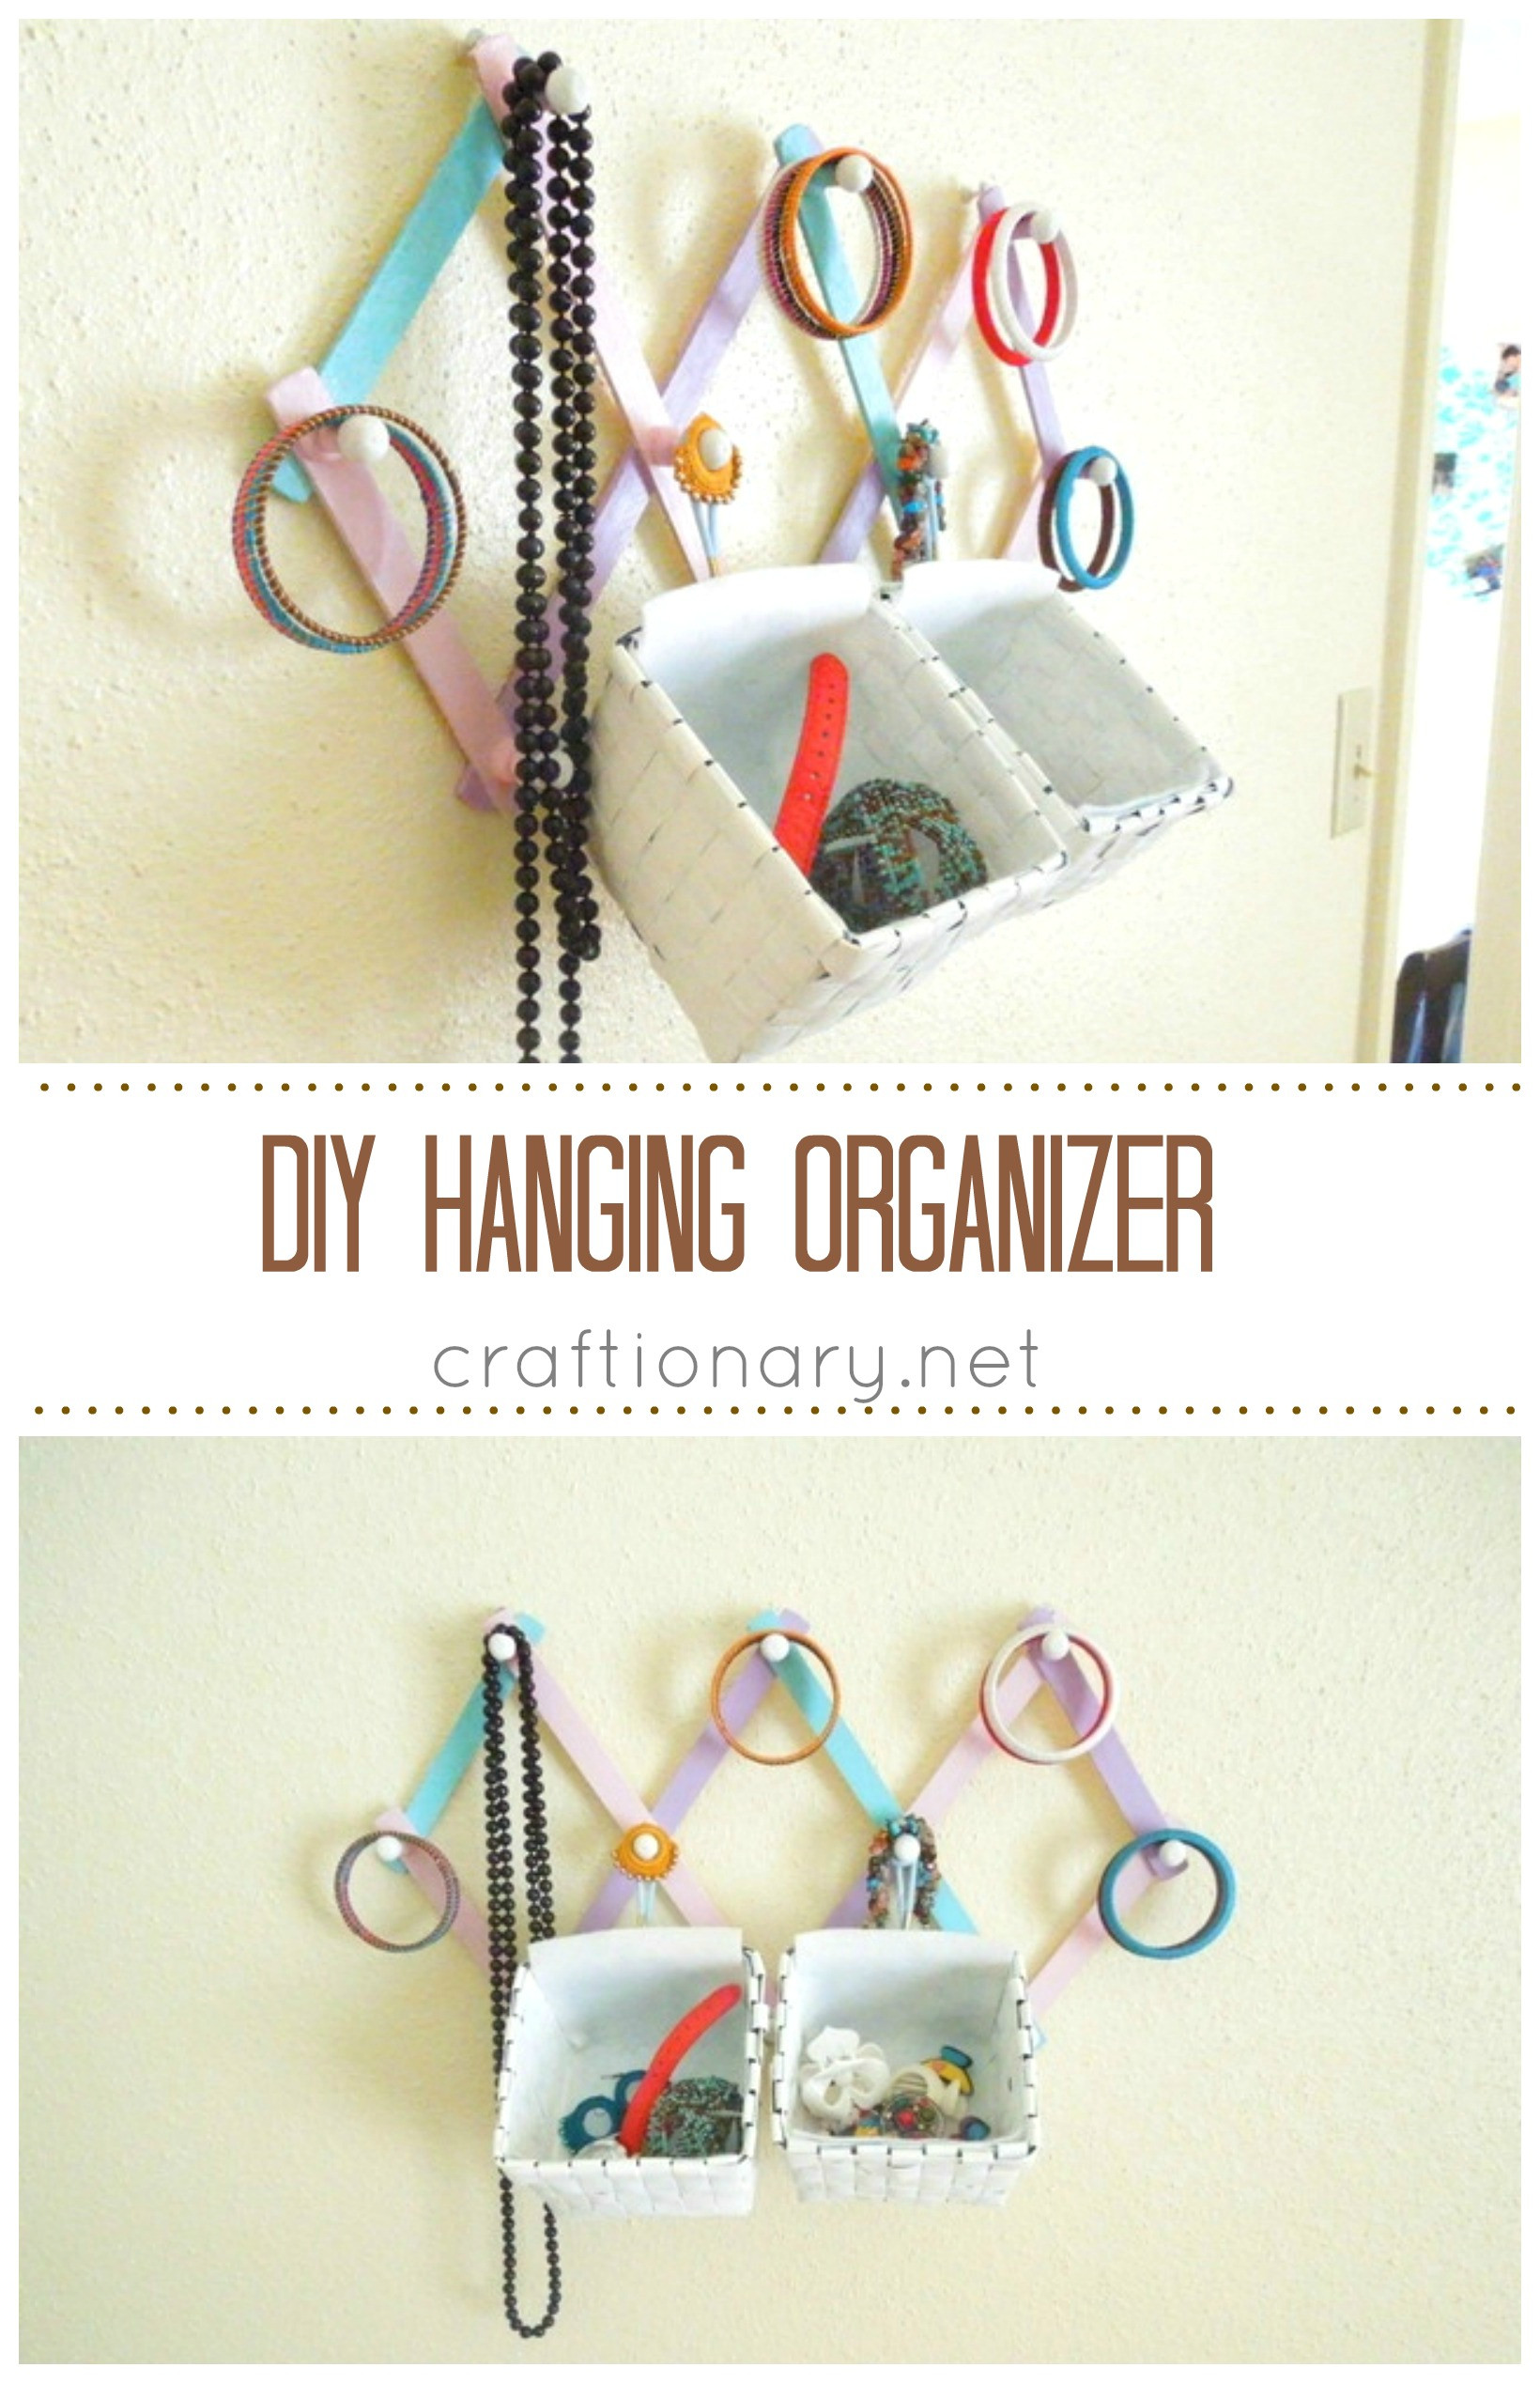 Best ideas about DIY Hanger Organizer . Save or Pin Craftionary Now.